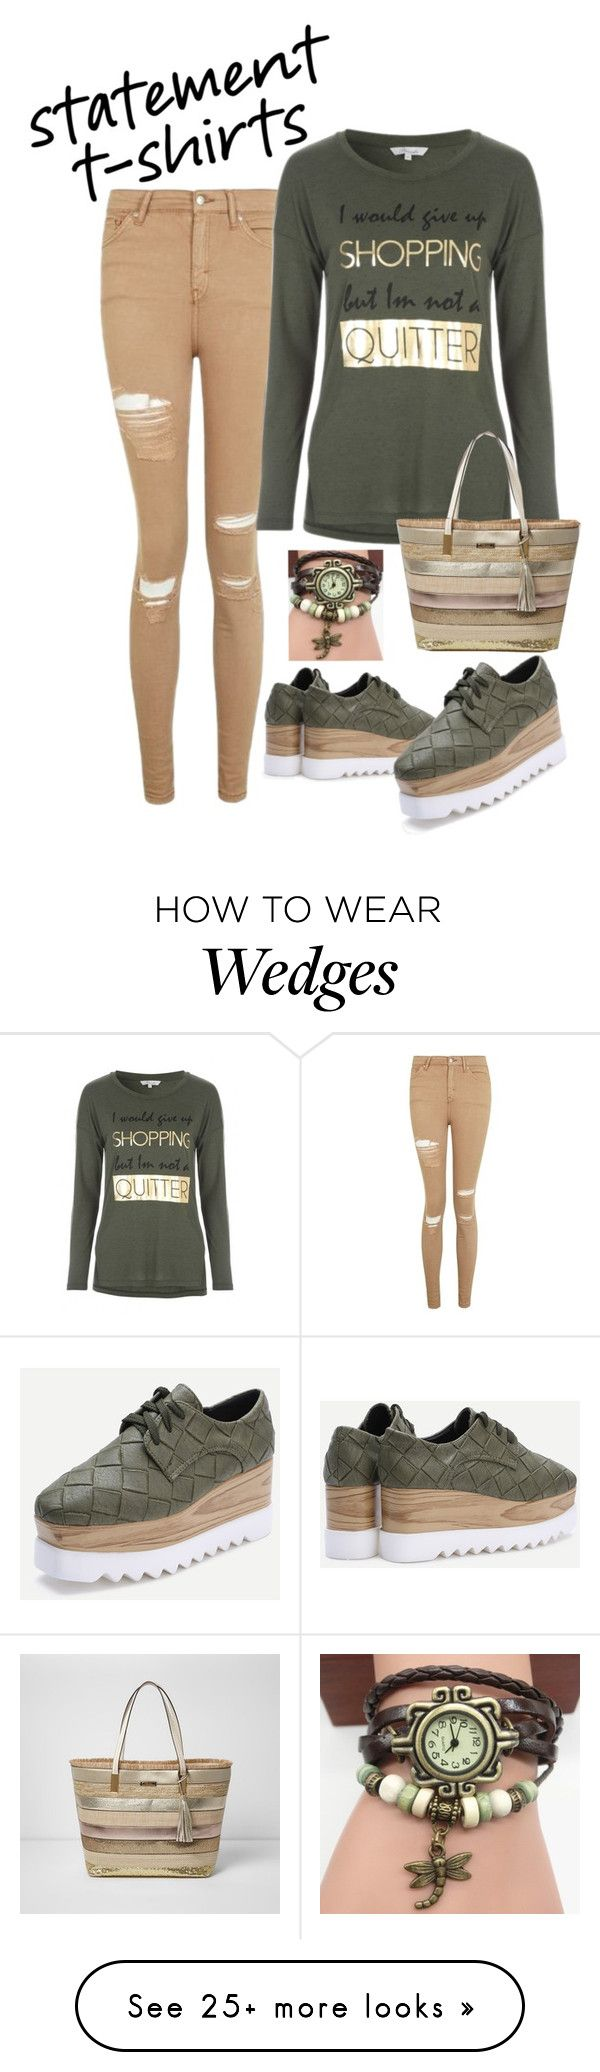 """""""Say It Loud: Slogan T-Shirts"""" by miriam-witte on Polyvore featuring Topshop and River Island"""